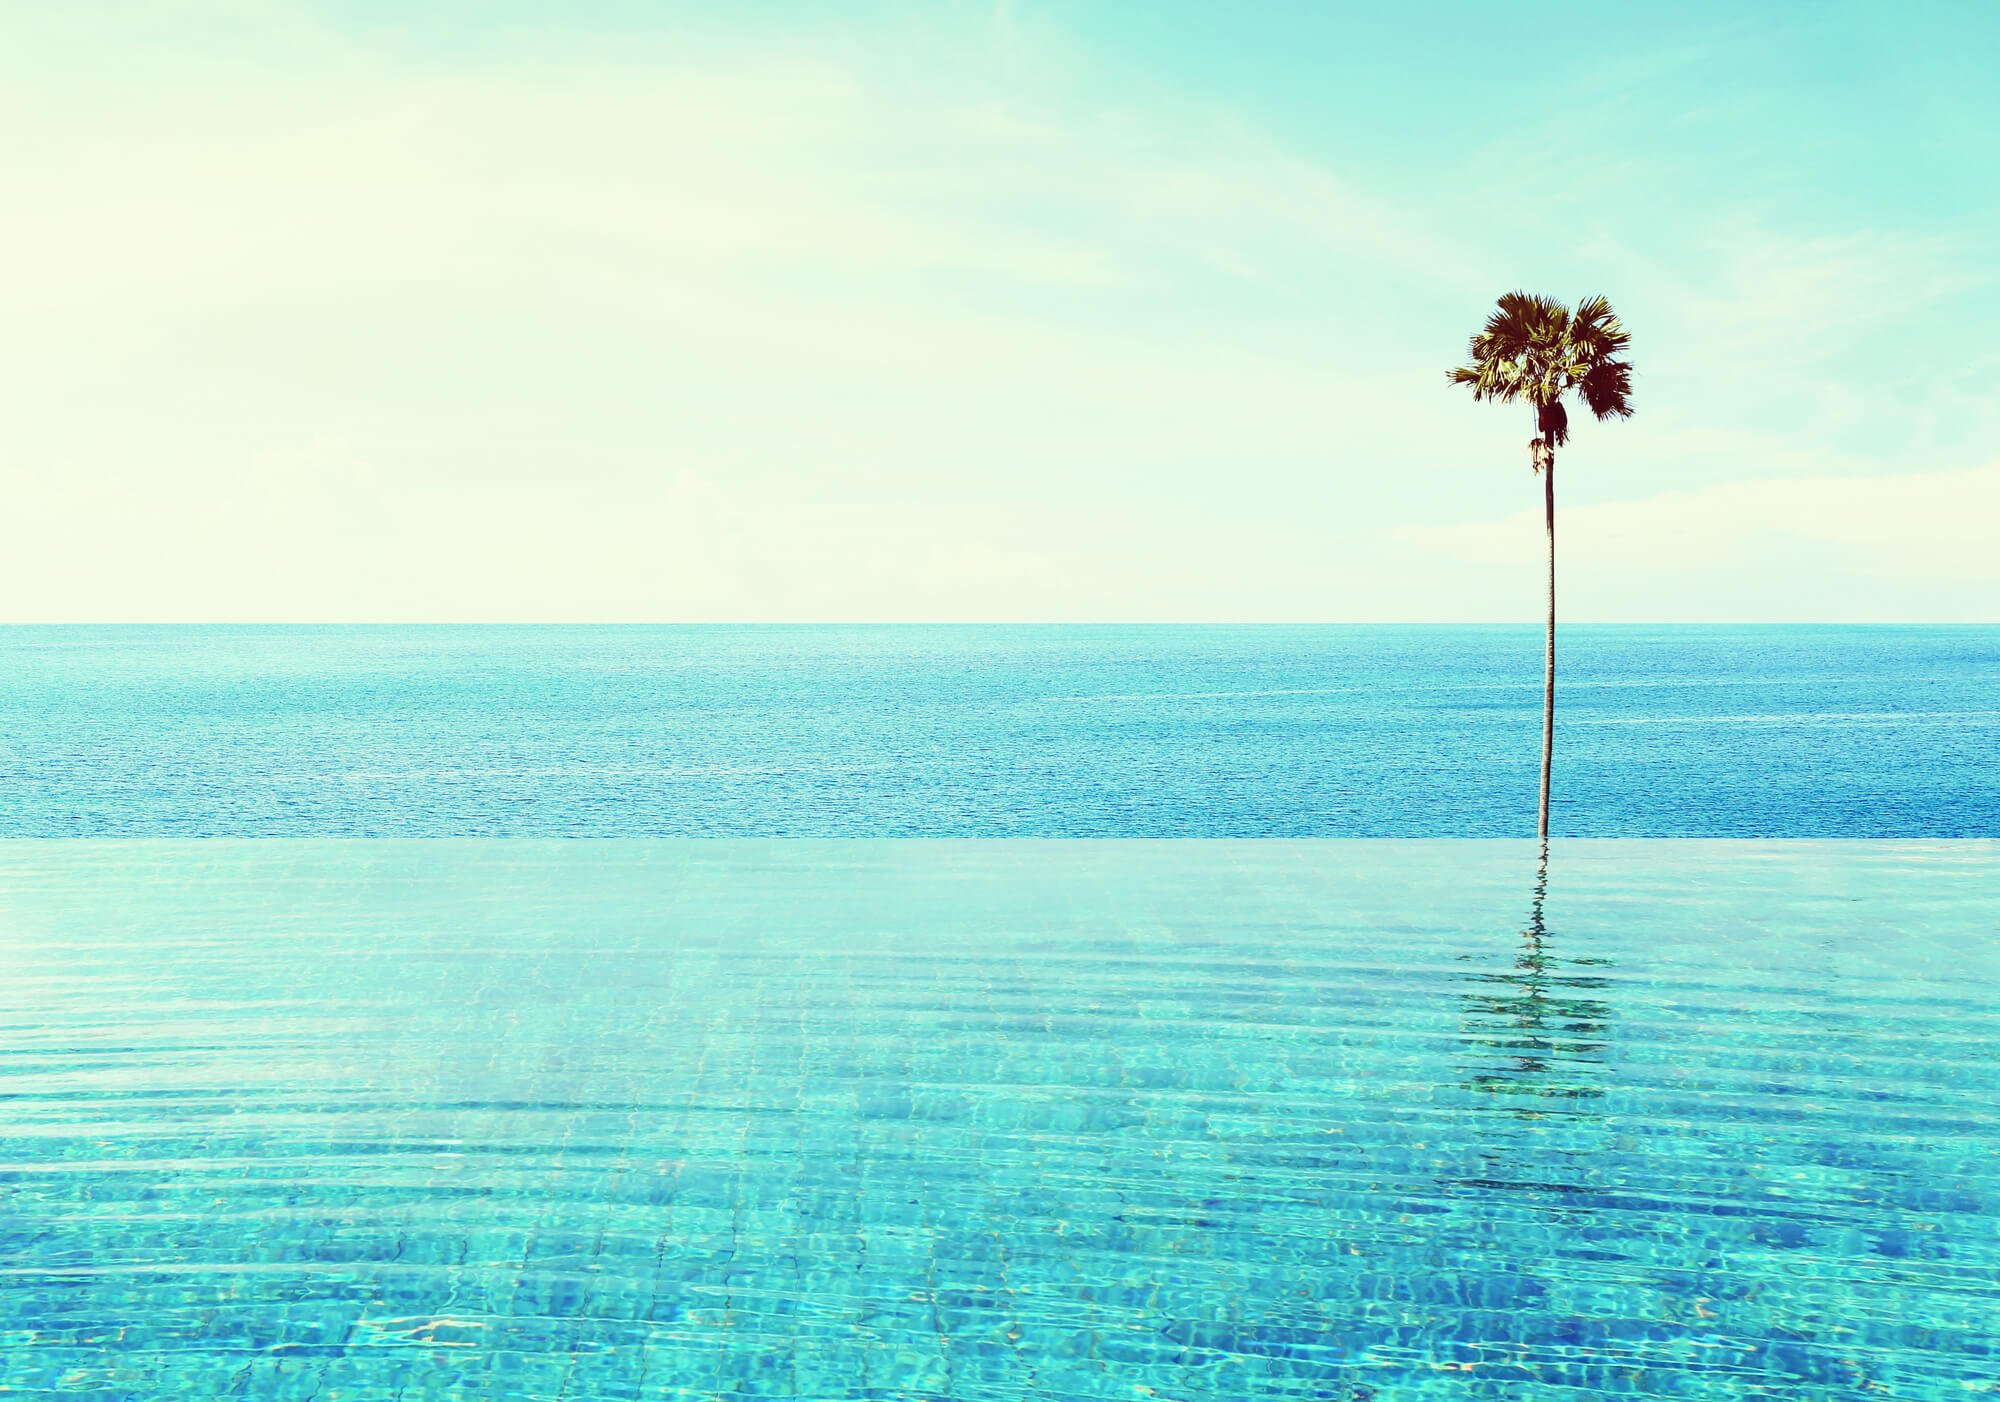 An infinity edge pool overlooking the ocean, with a single off center palm tree